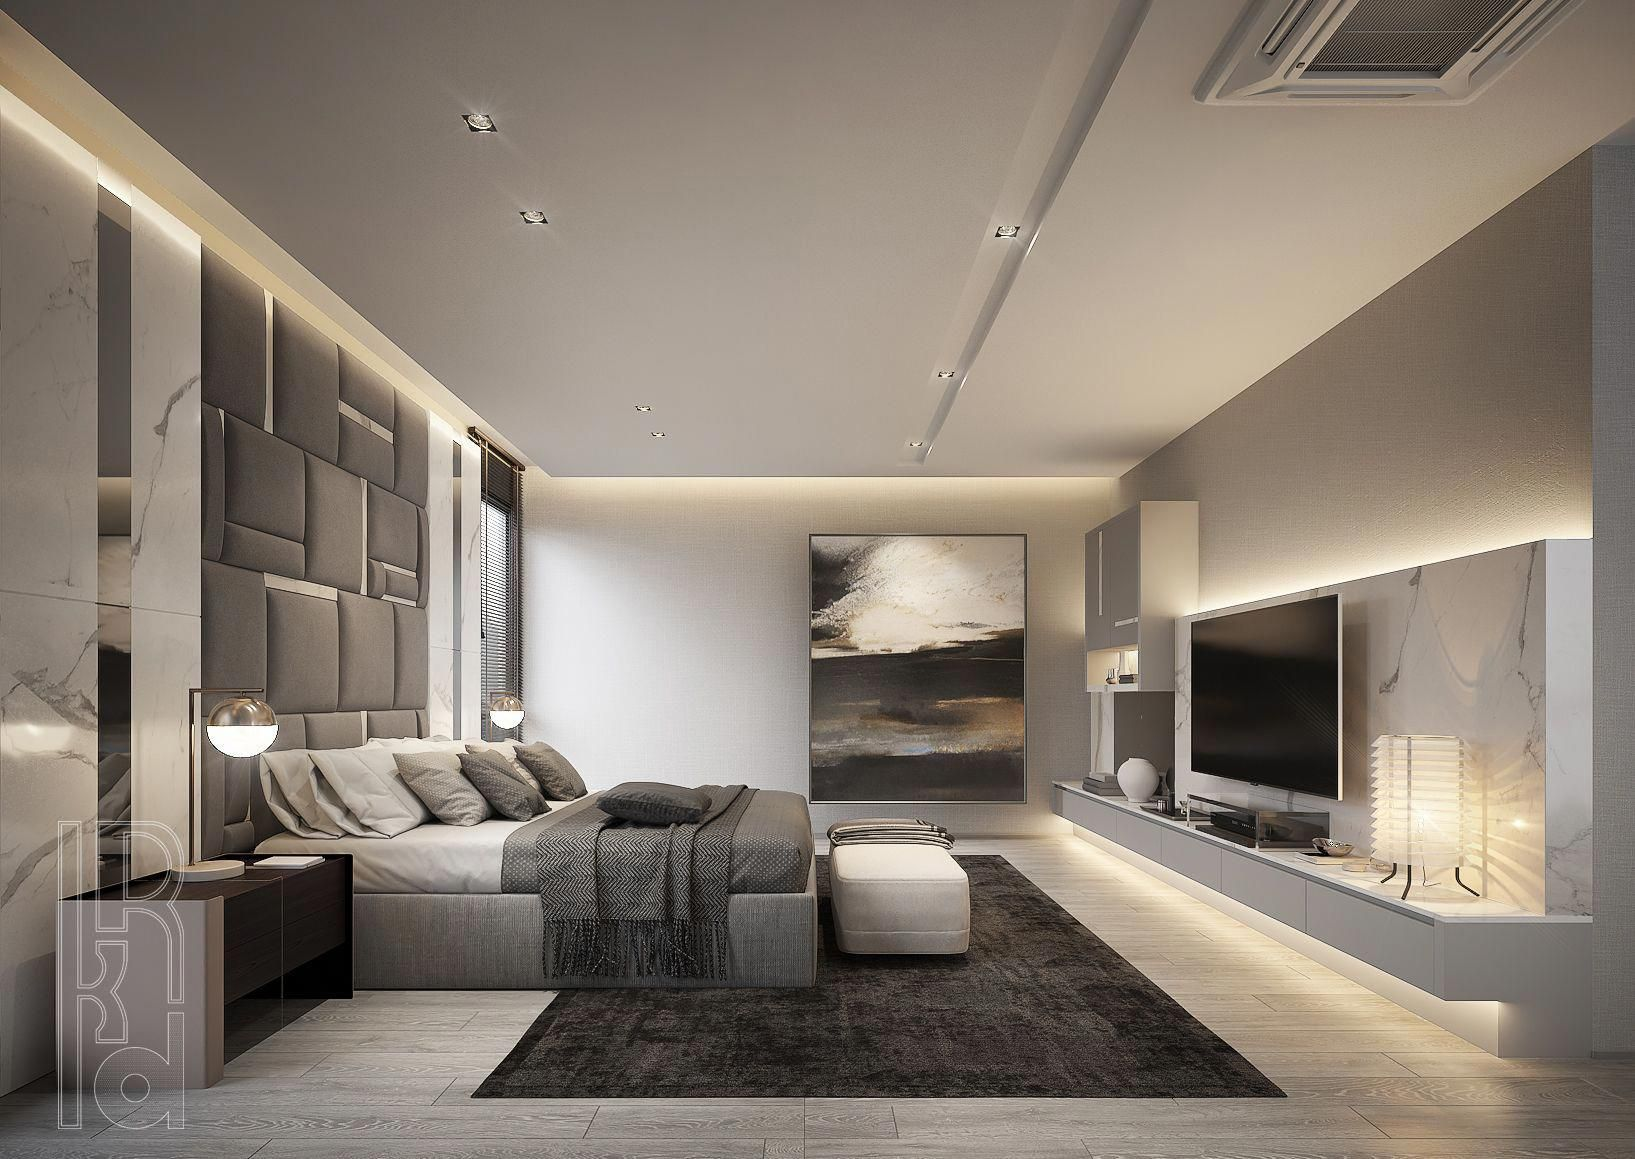 Contemporarybedroom Luxurious Bedrooms Modern Luxury Bedroom Mansion Bedroom Modern luxury room photo